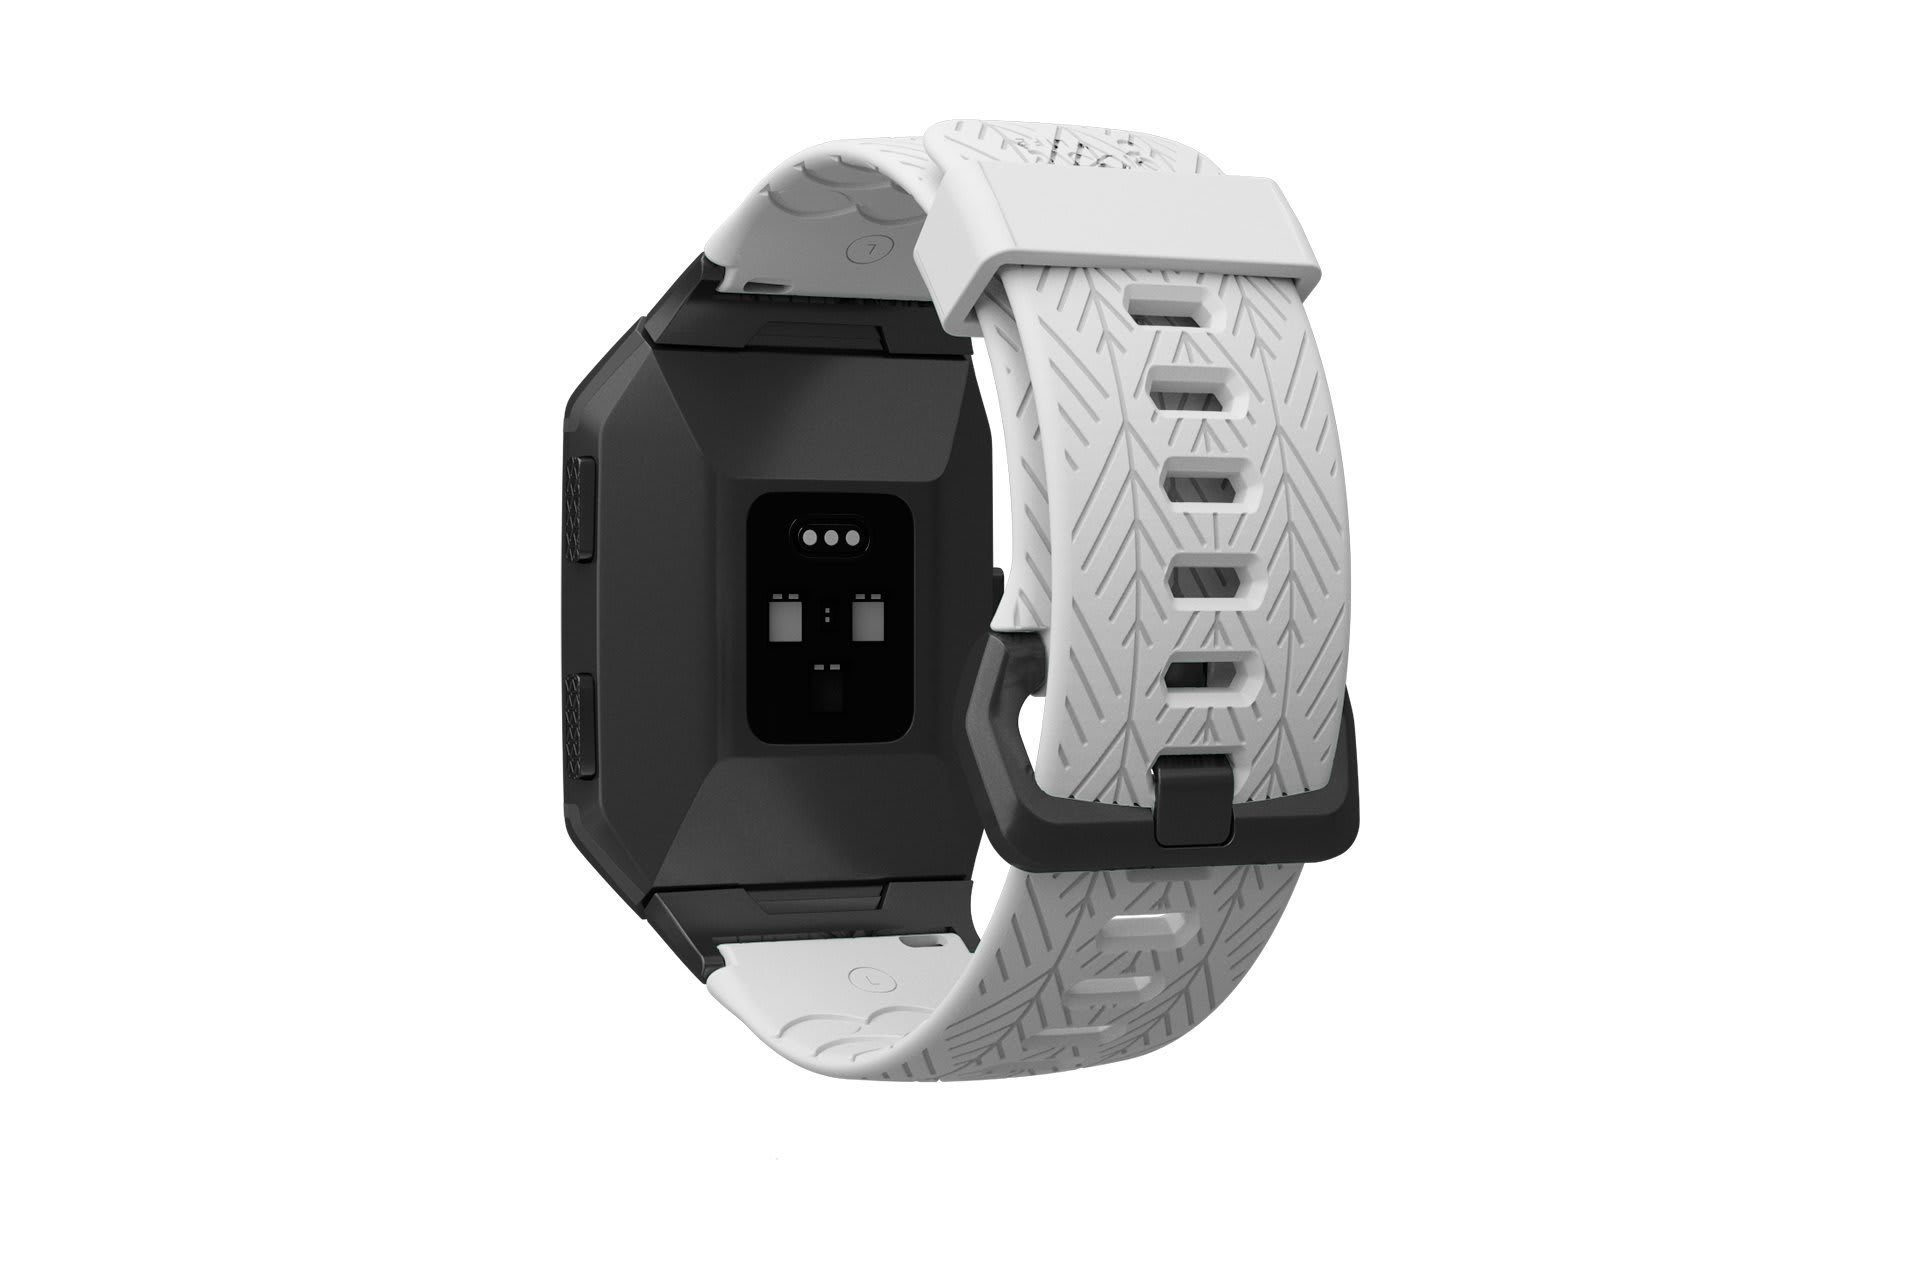 Ionic Dimension Arrows White   fitbit watch band with gray hardware viewed from top down